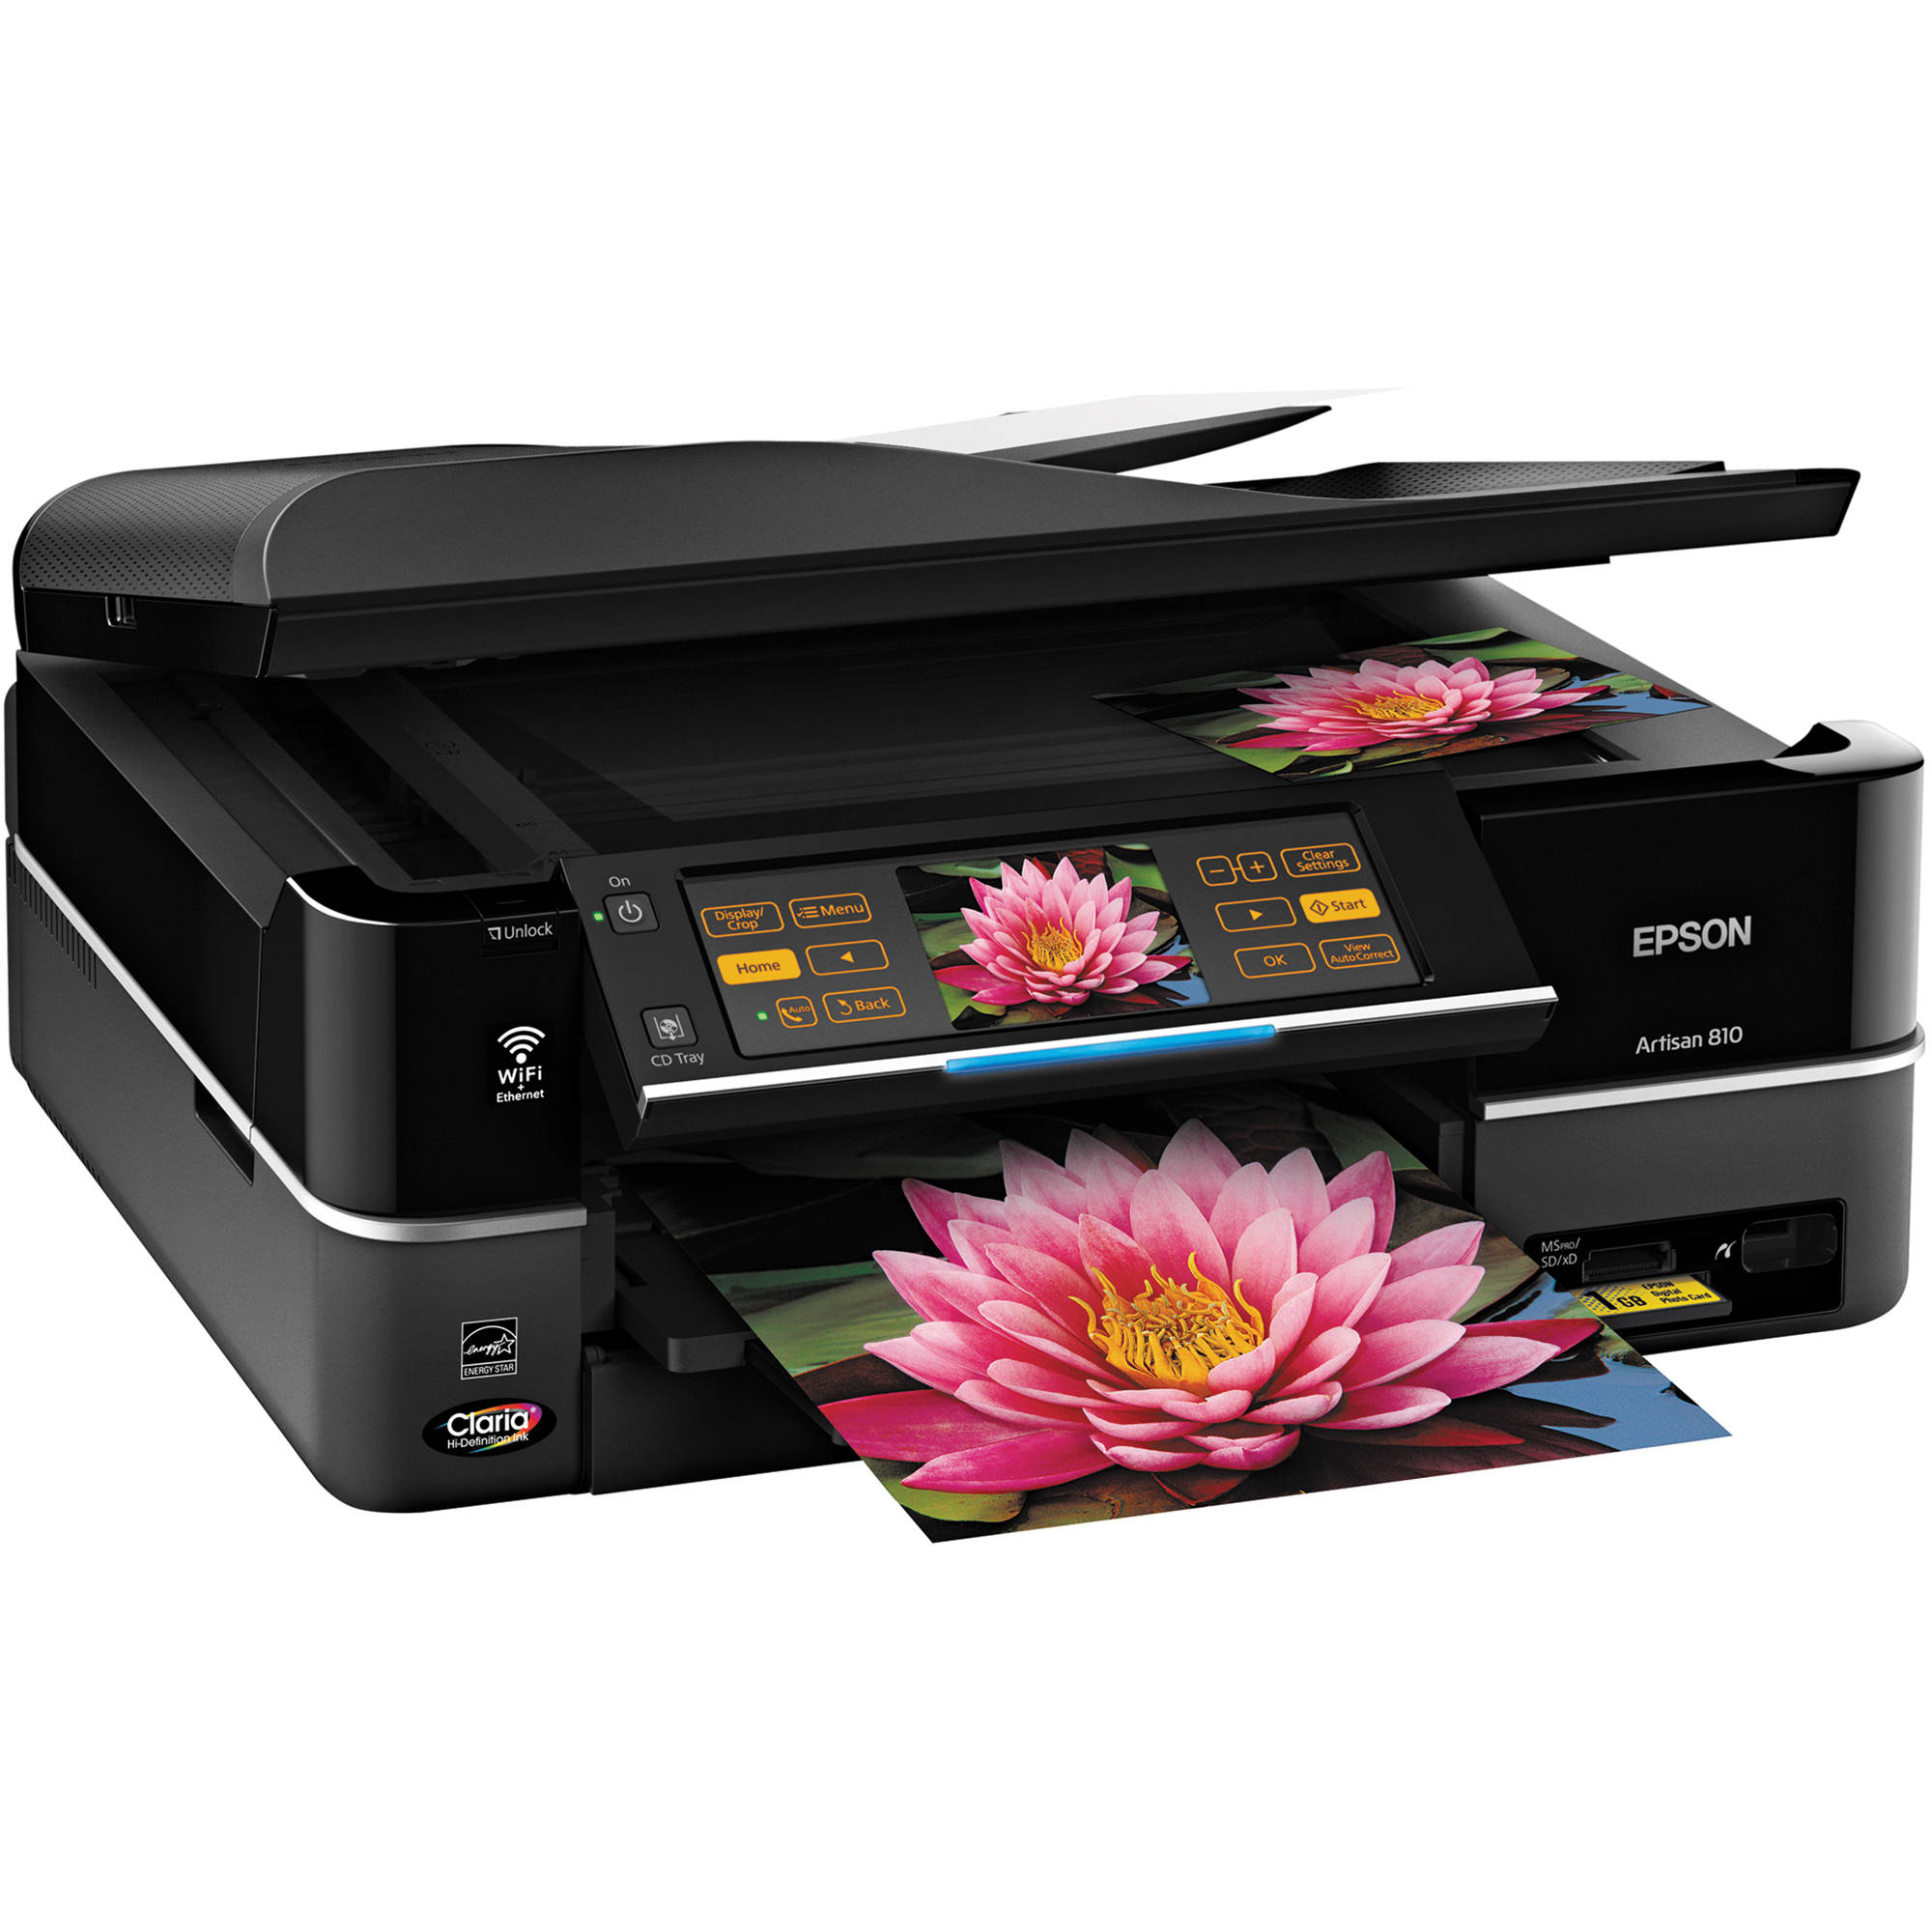 epson artisan 810 all in one printer c11ca52201 b h photo video rh bhphotovideo com epson artisan 810 manual download epson artisan 810 manual feeder